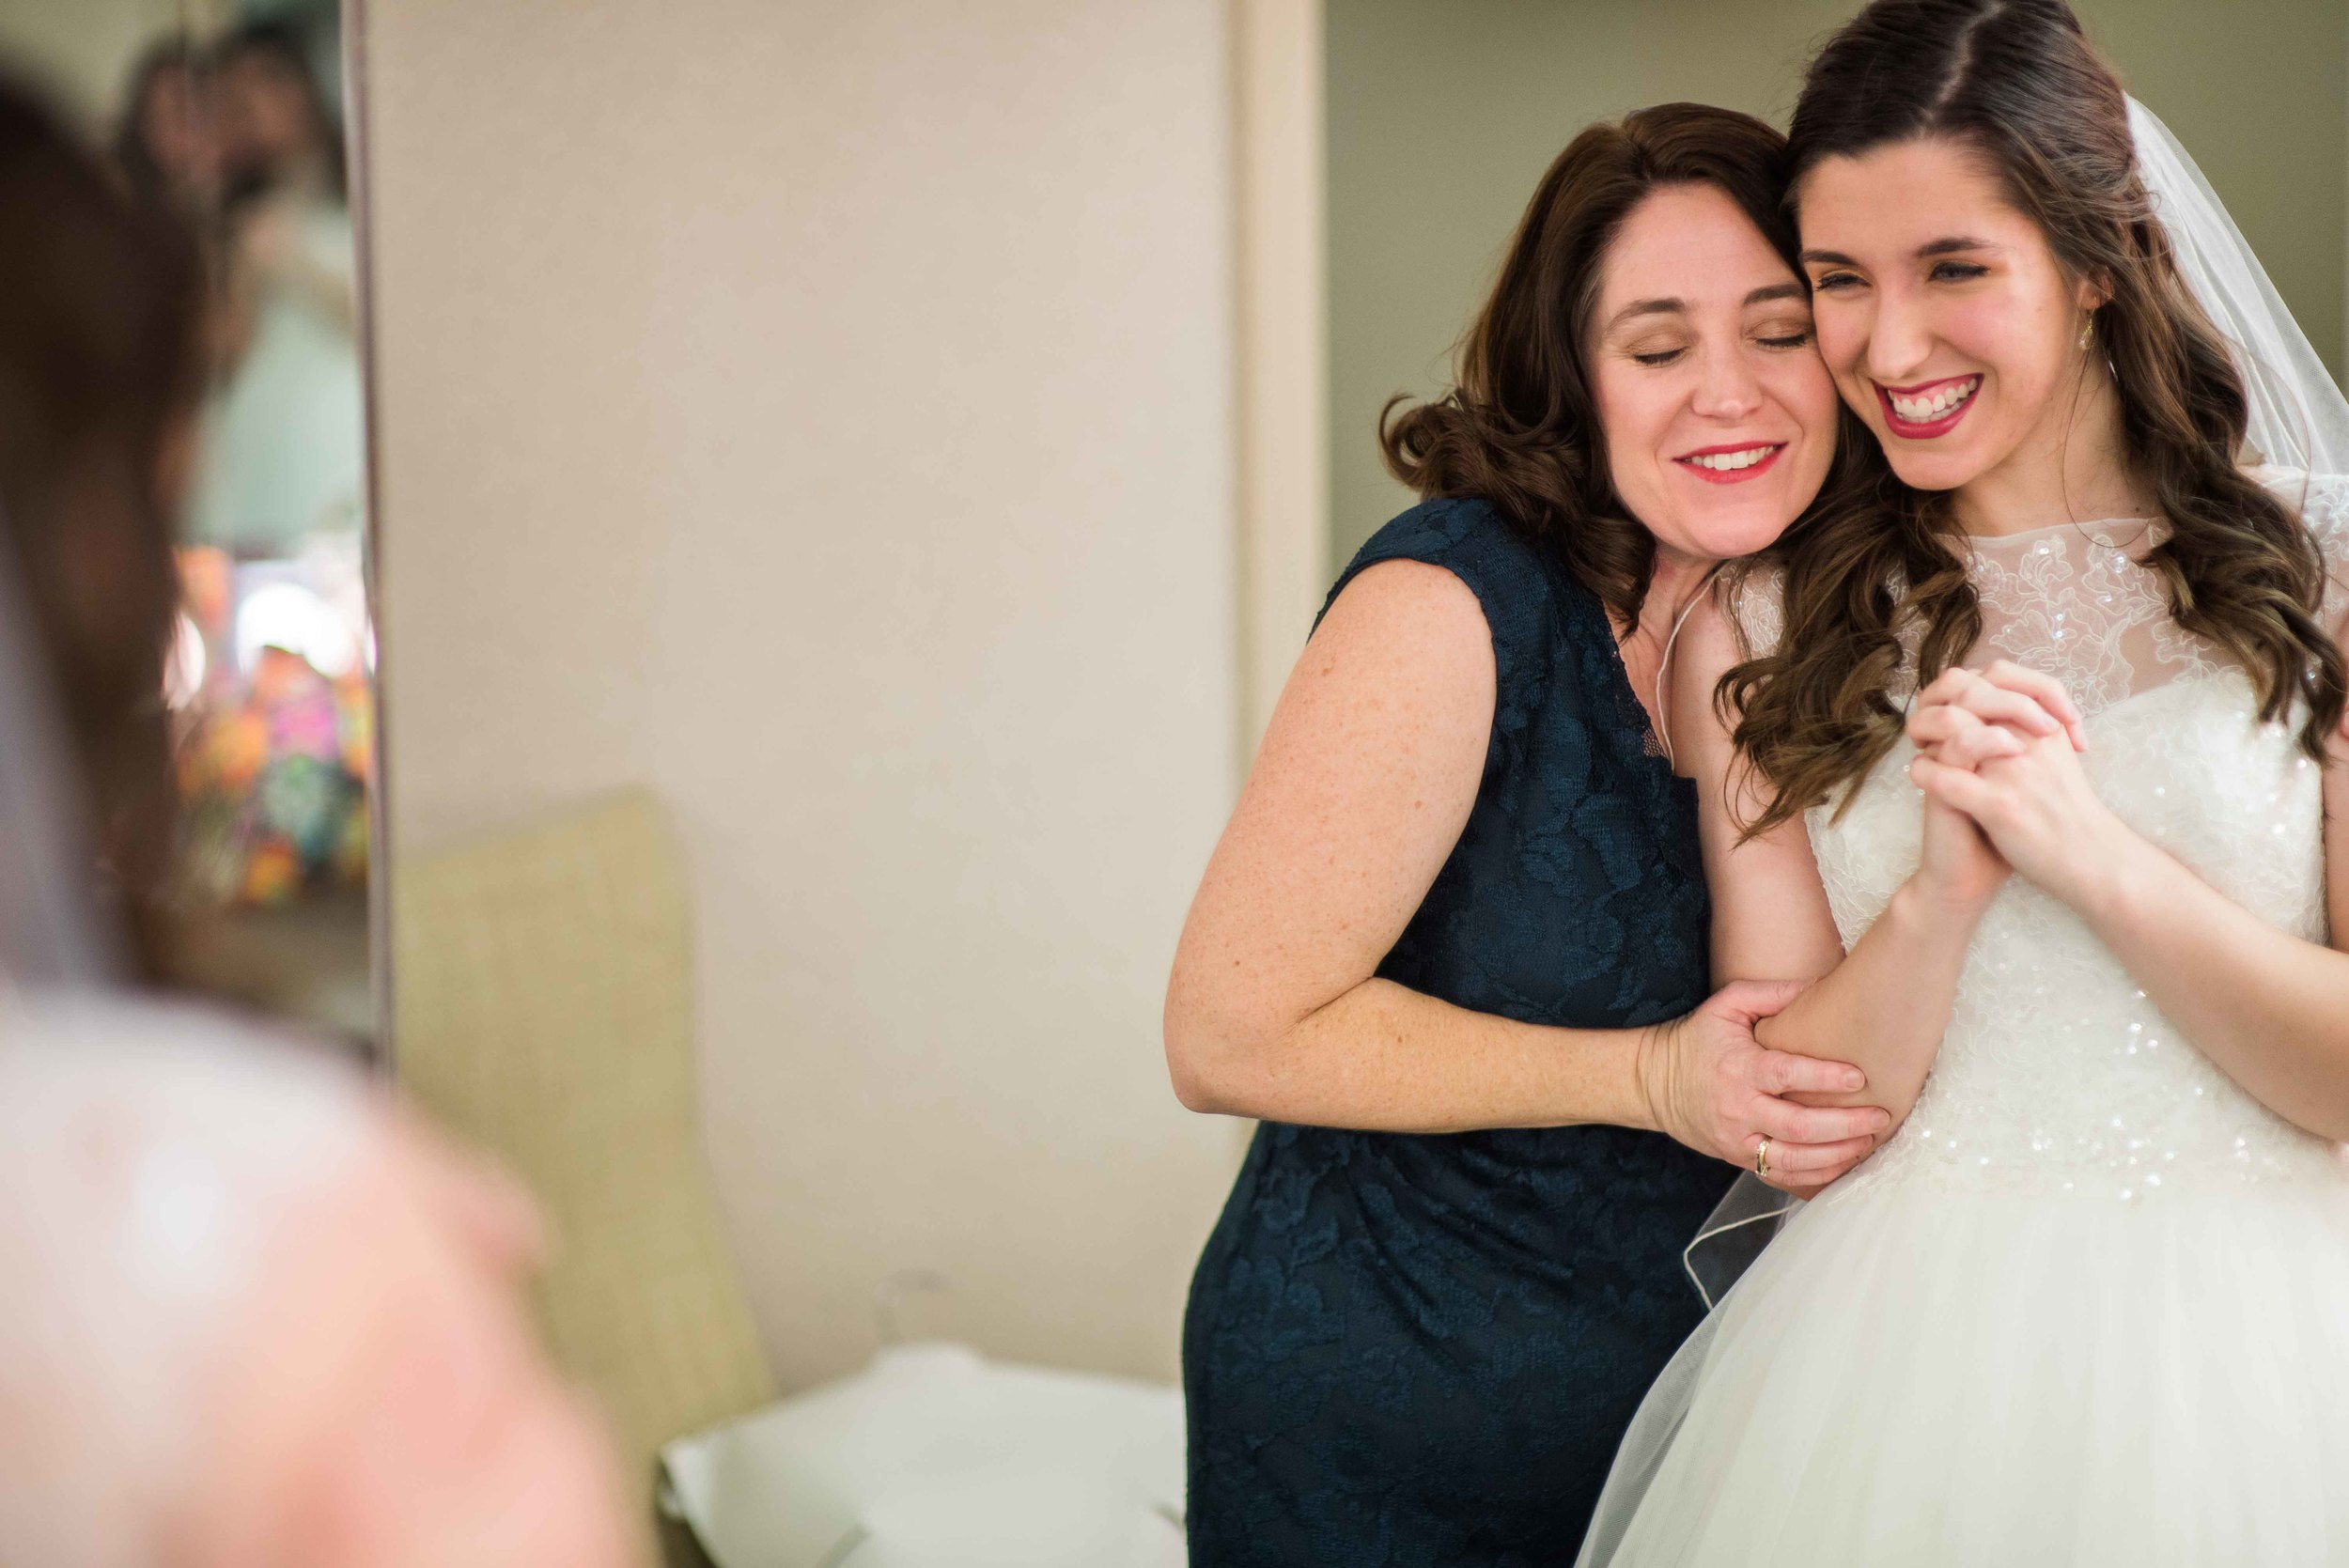 The Mother of the Bride seeing her Daughter in her wedding dress for the first time.